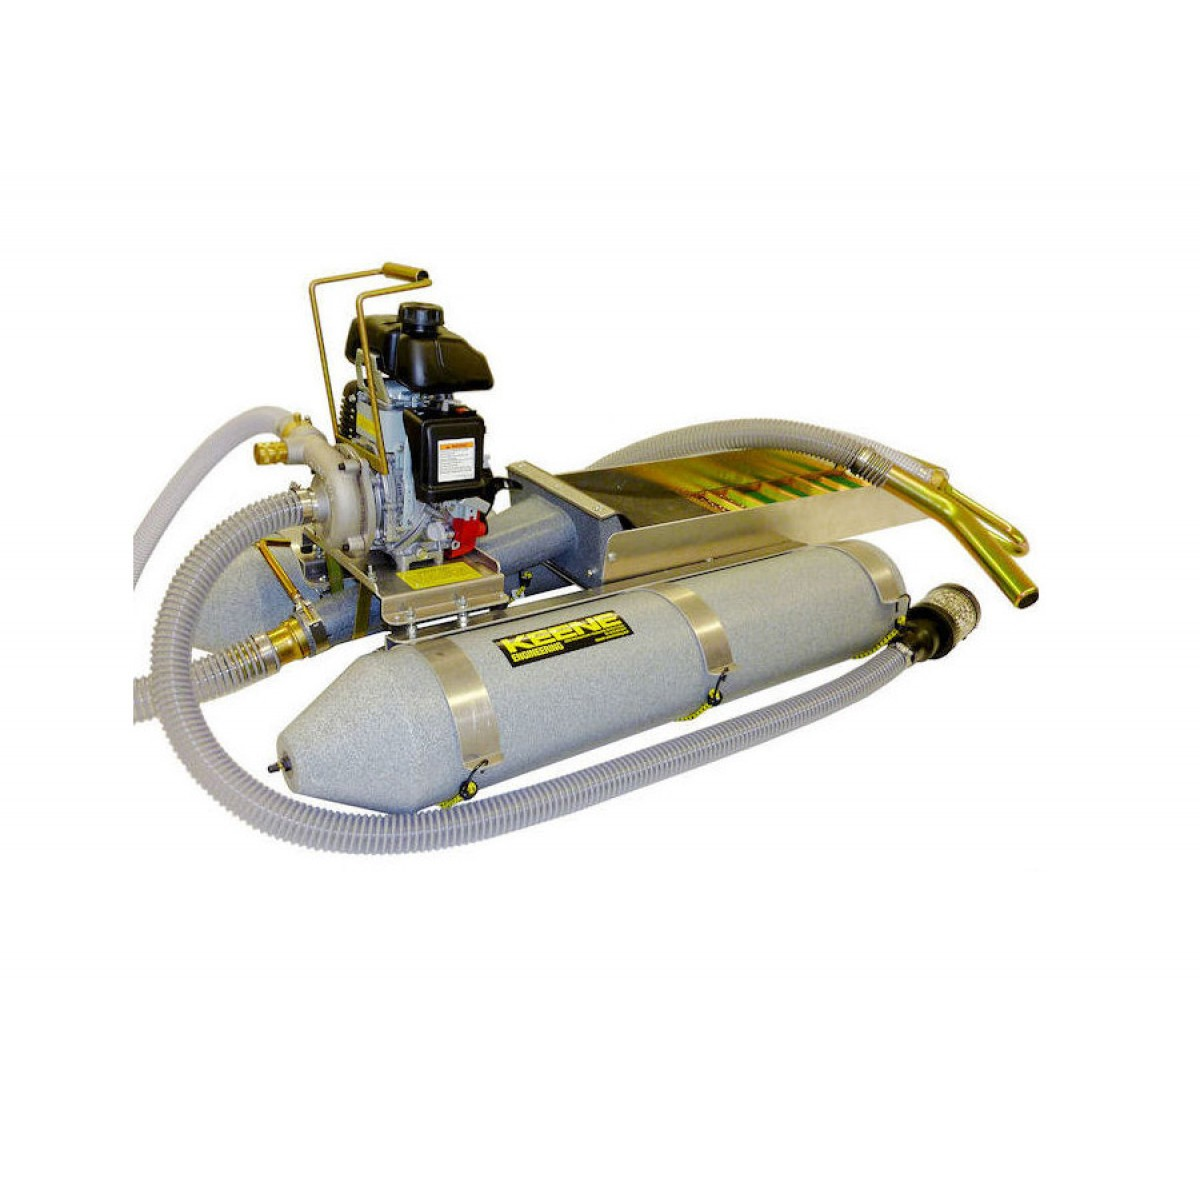 Keene Backpack Dredge with Power Sluice Conversion and Suction Nozzle